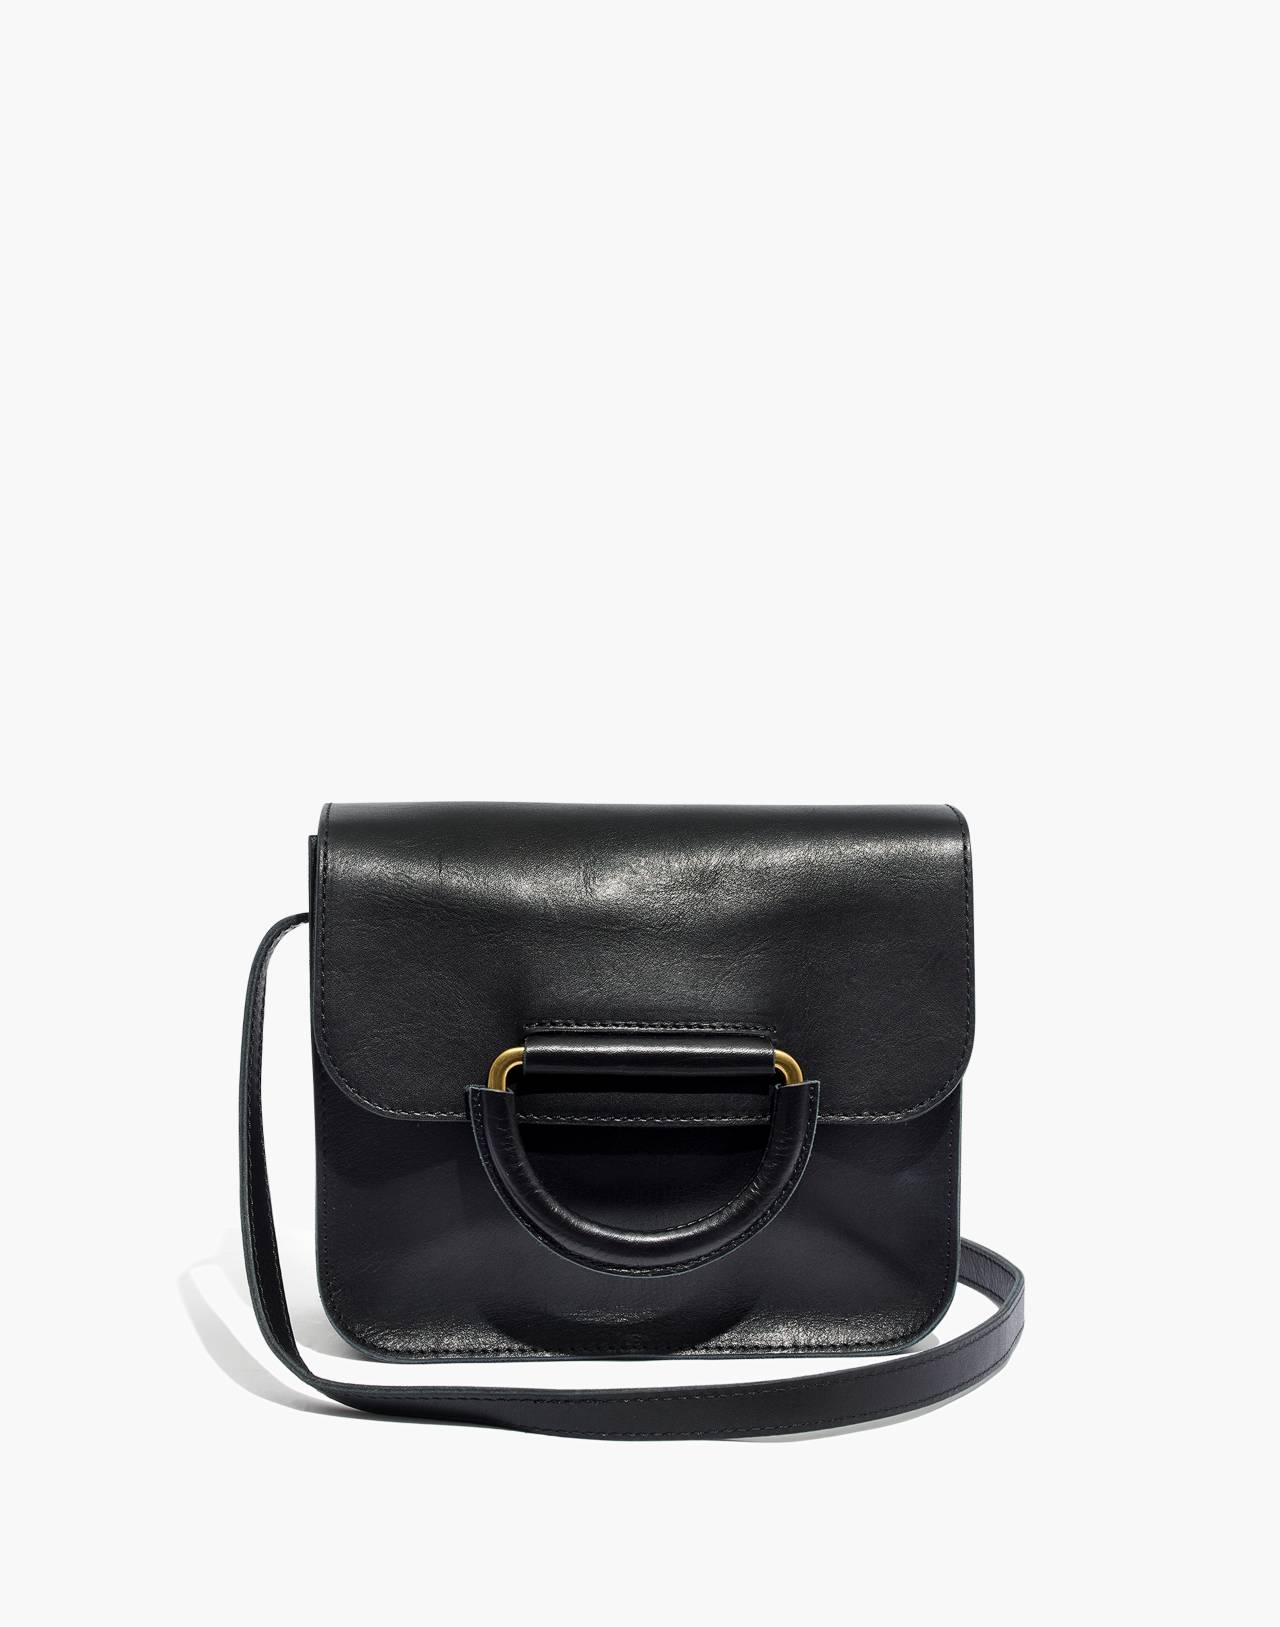 The Holland Shoulder Bag in Leather in true black image 1